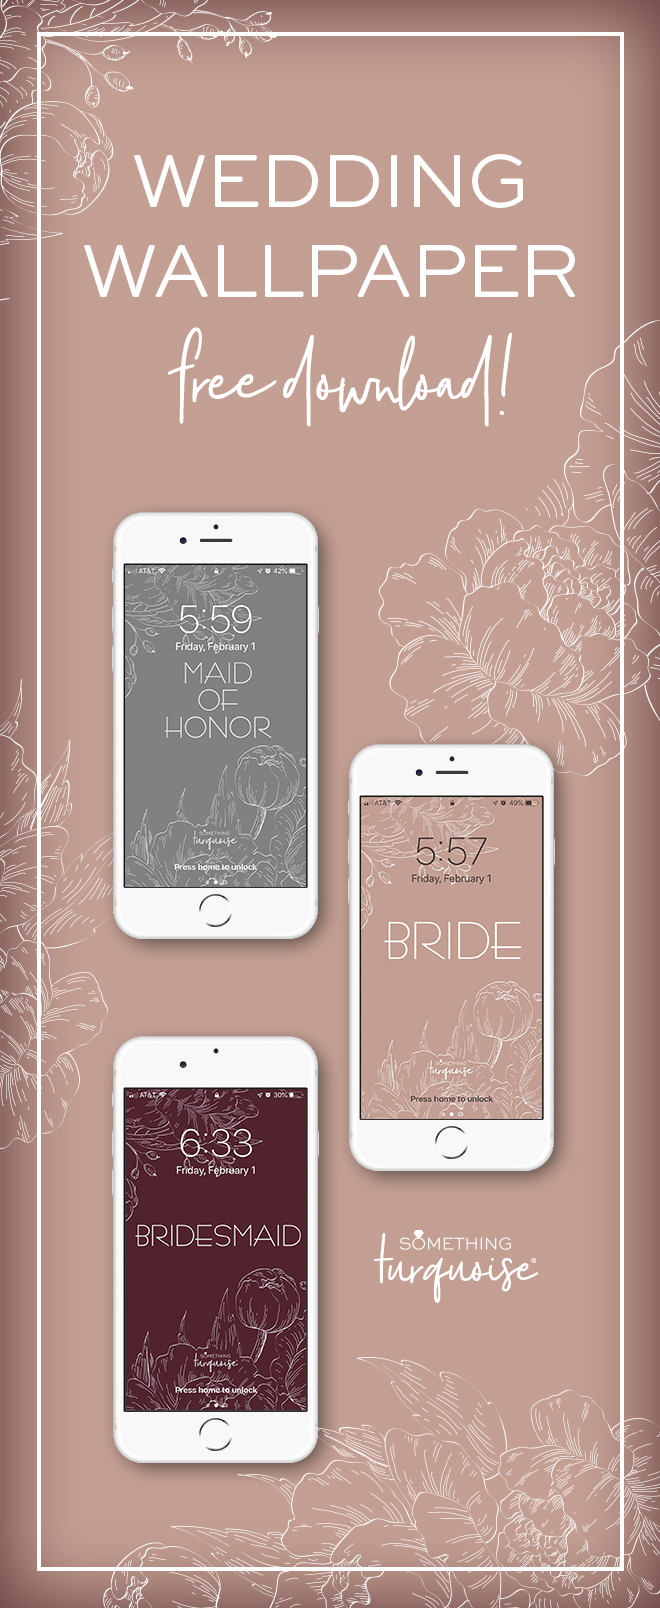 FREE Bride, Bridesmaid, and Maid of Honor smart phone wallpaper downloads!